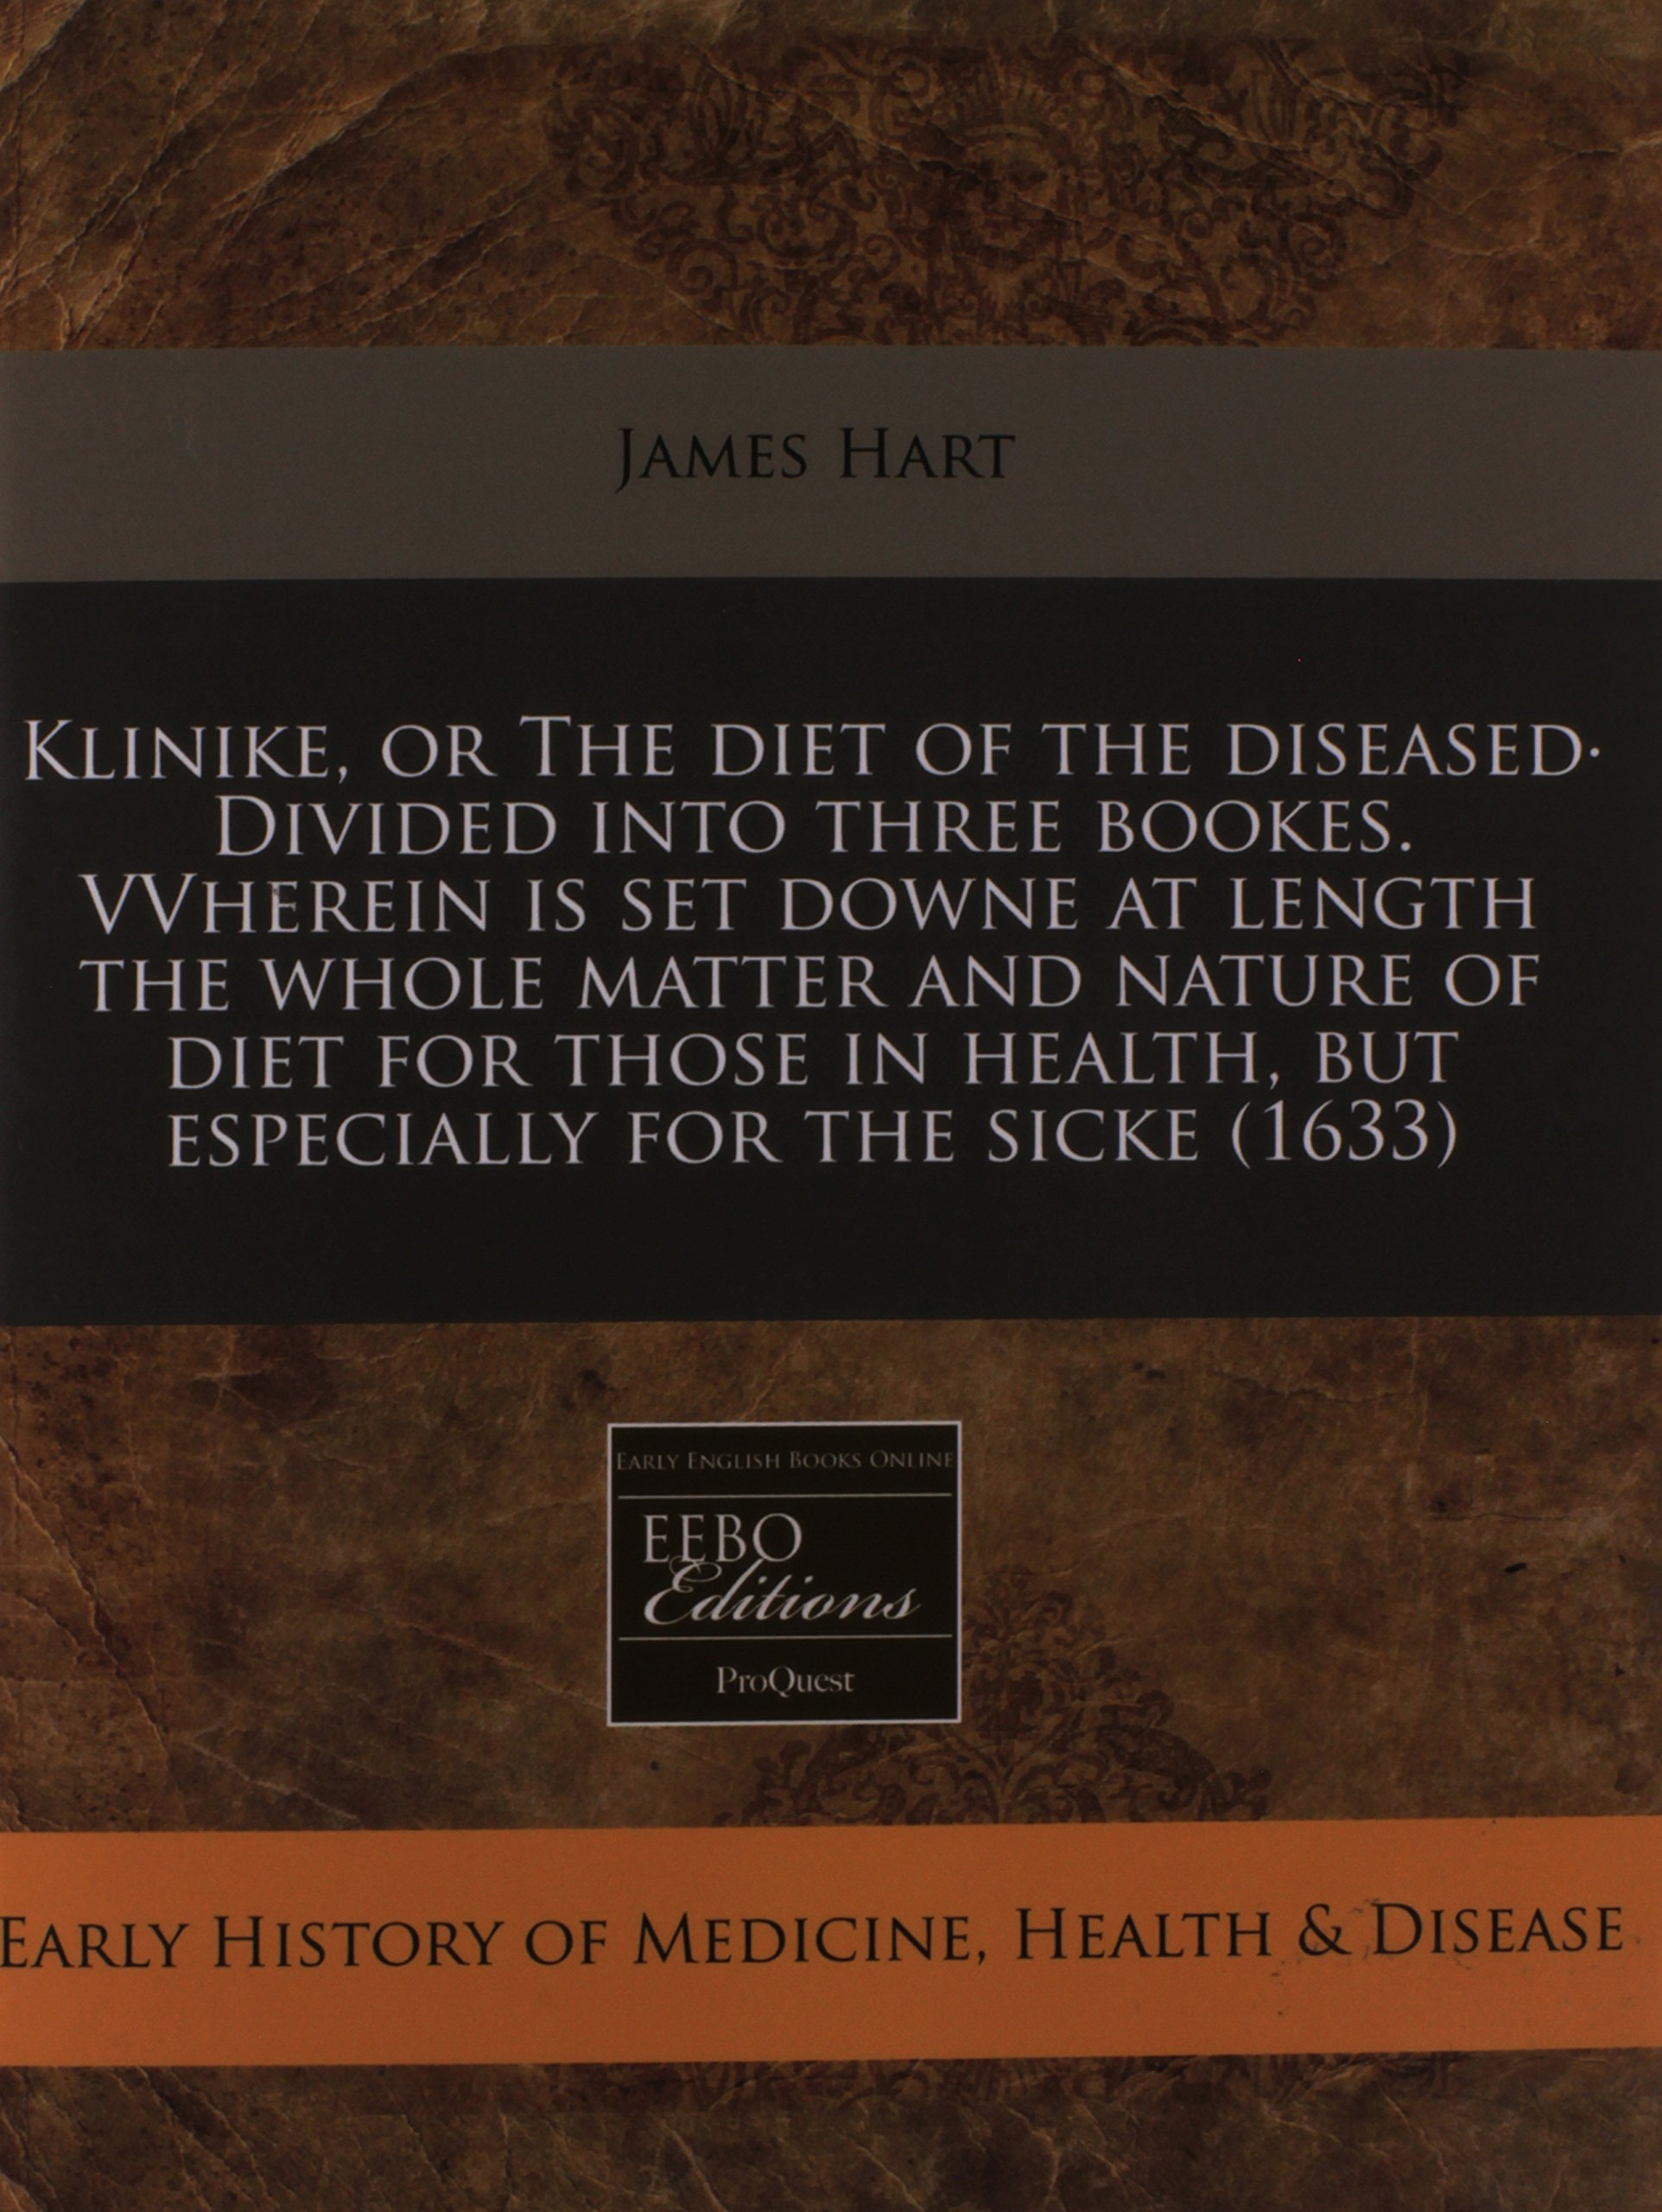 Read Online Klinike, or The diet of the diseased· Divided into three bookes. VVherein is set downe at length the whole matter and nature of diet for those in health, but especially for the sicke (1633) pdf